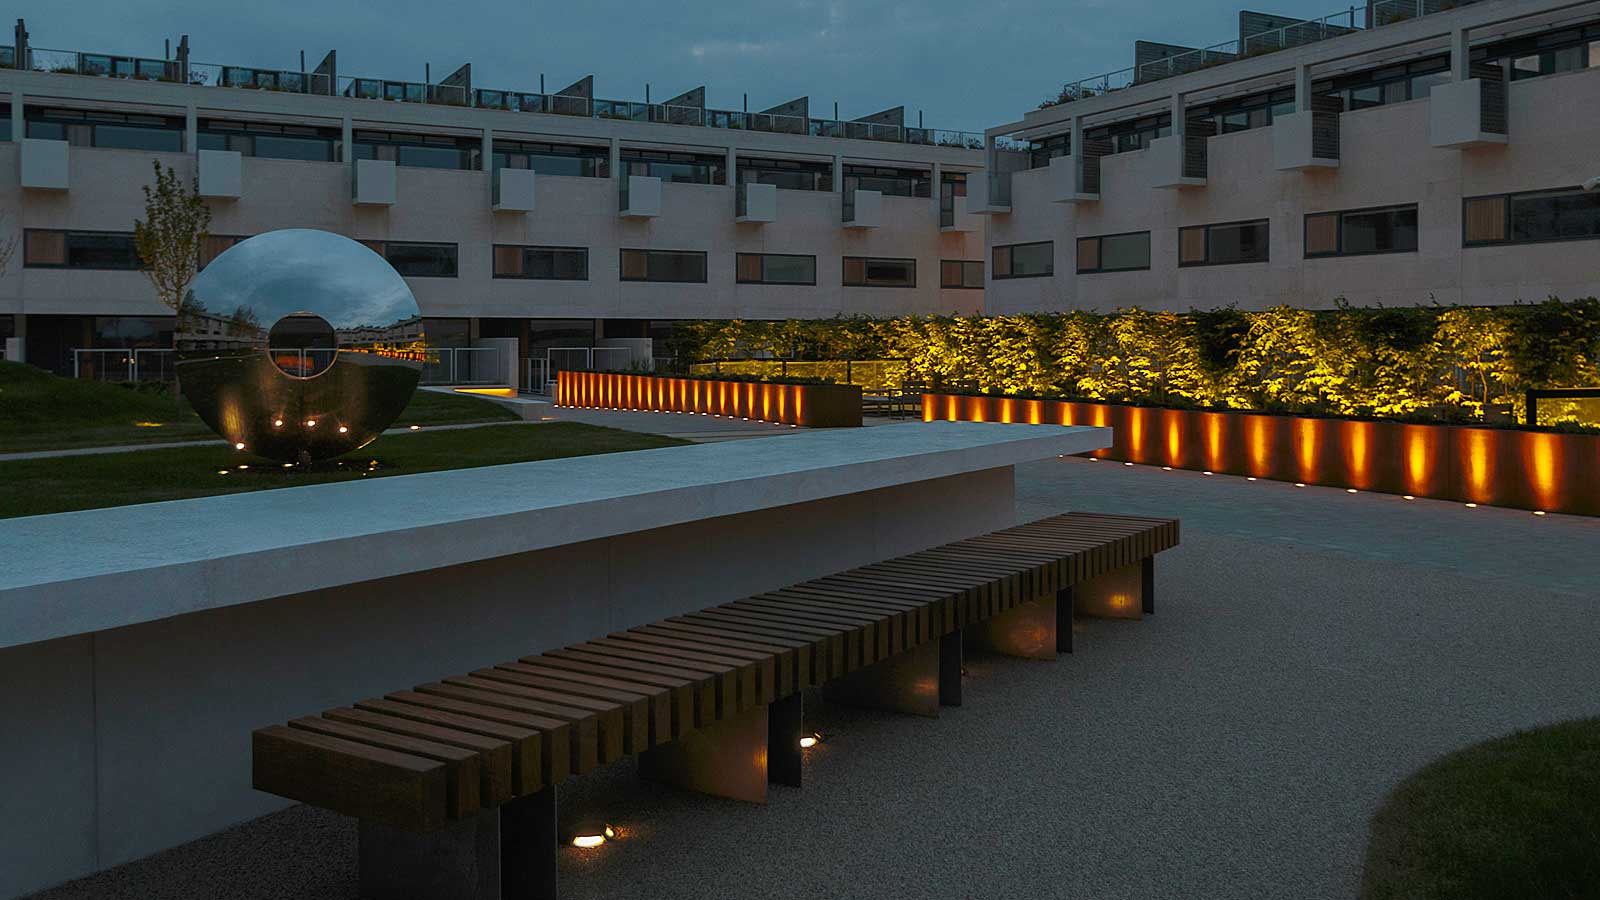 The scenographic garden lighting project of the prestigious Gabriel Square residential development